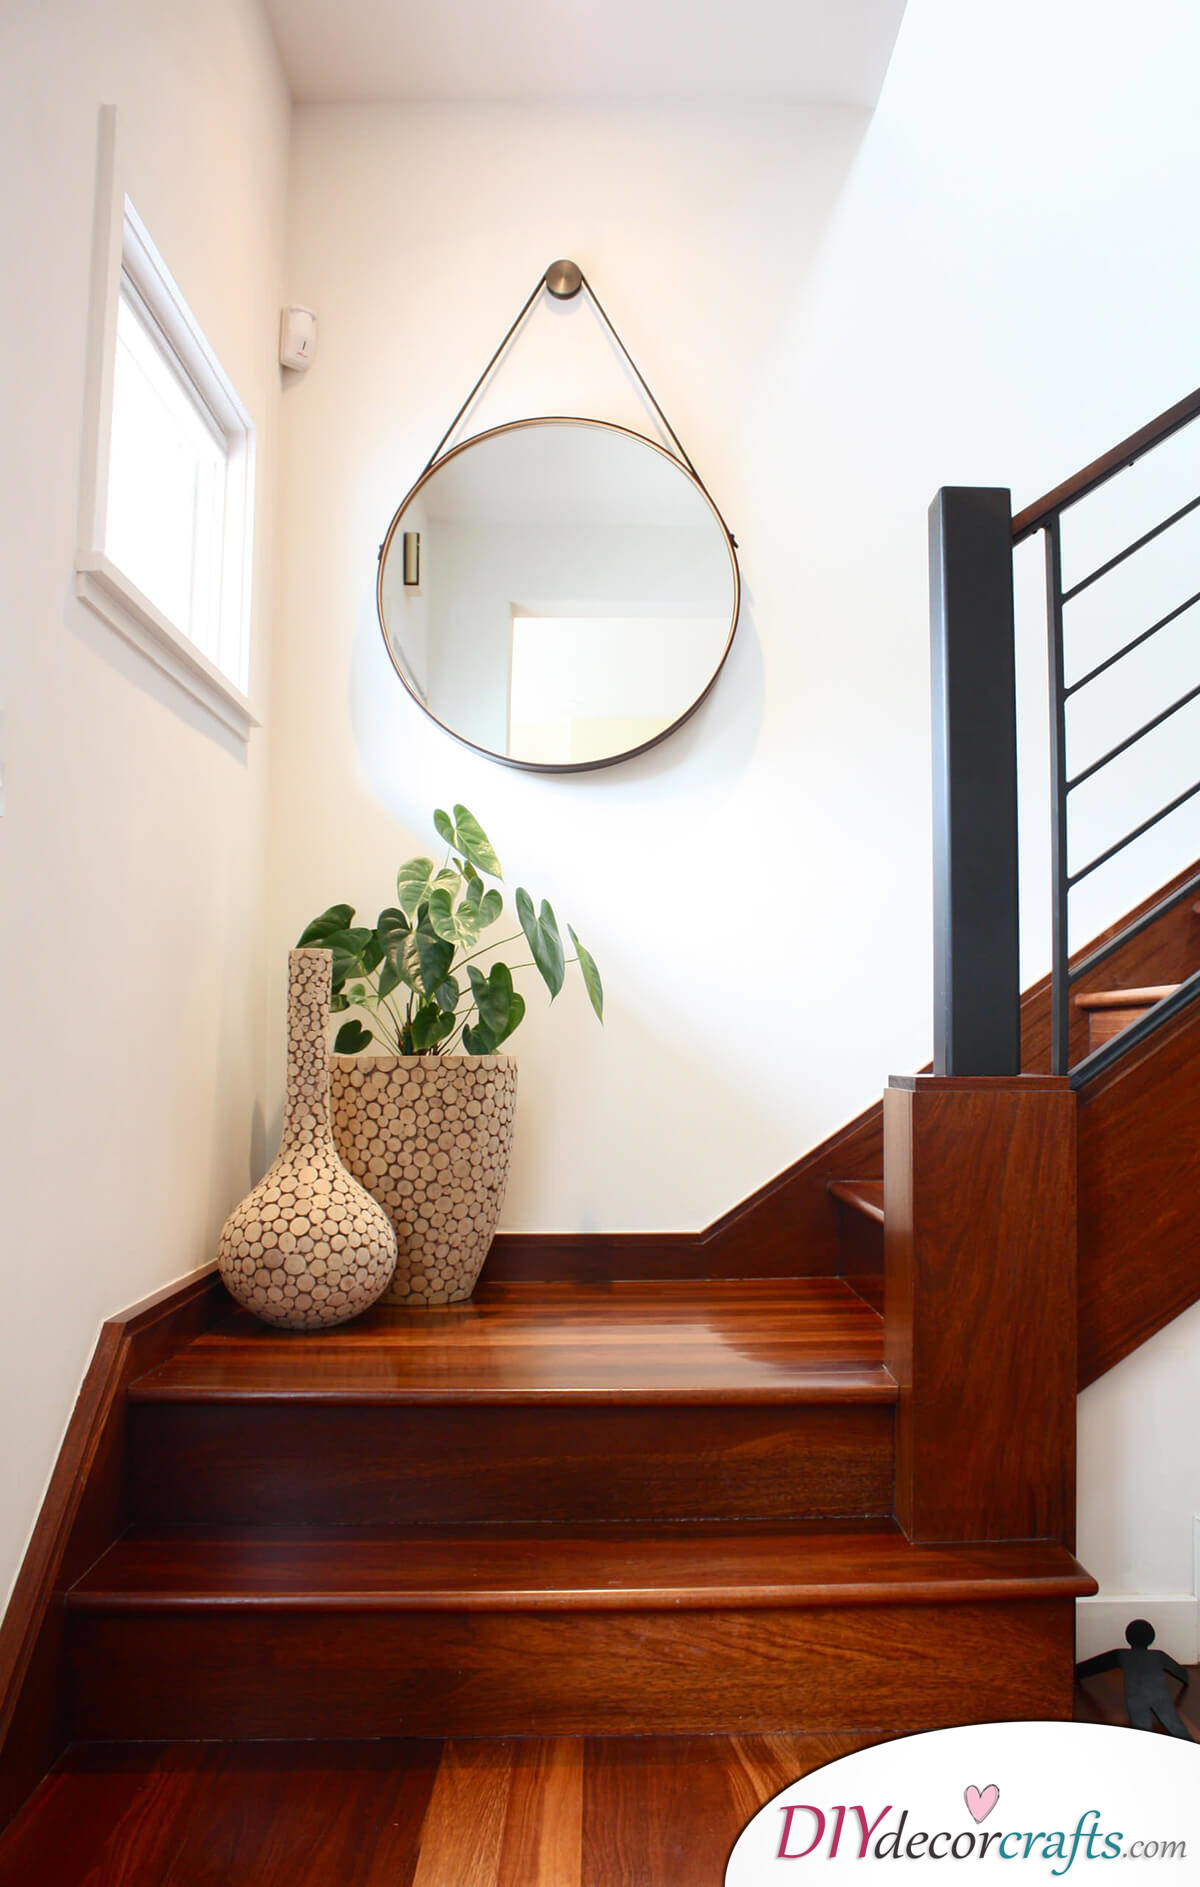 Simple Ways To Freshen Up Stairways, Minimalistic Stairway Decoration